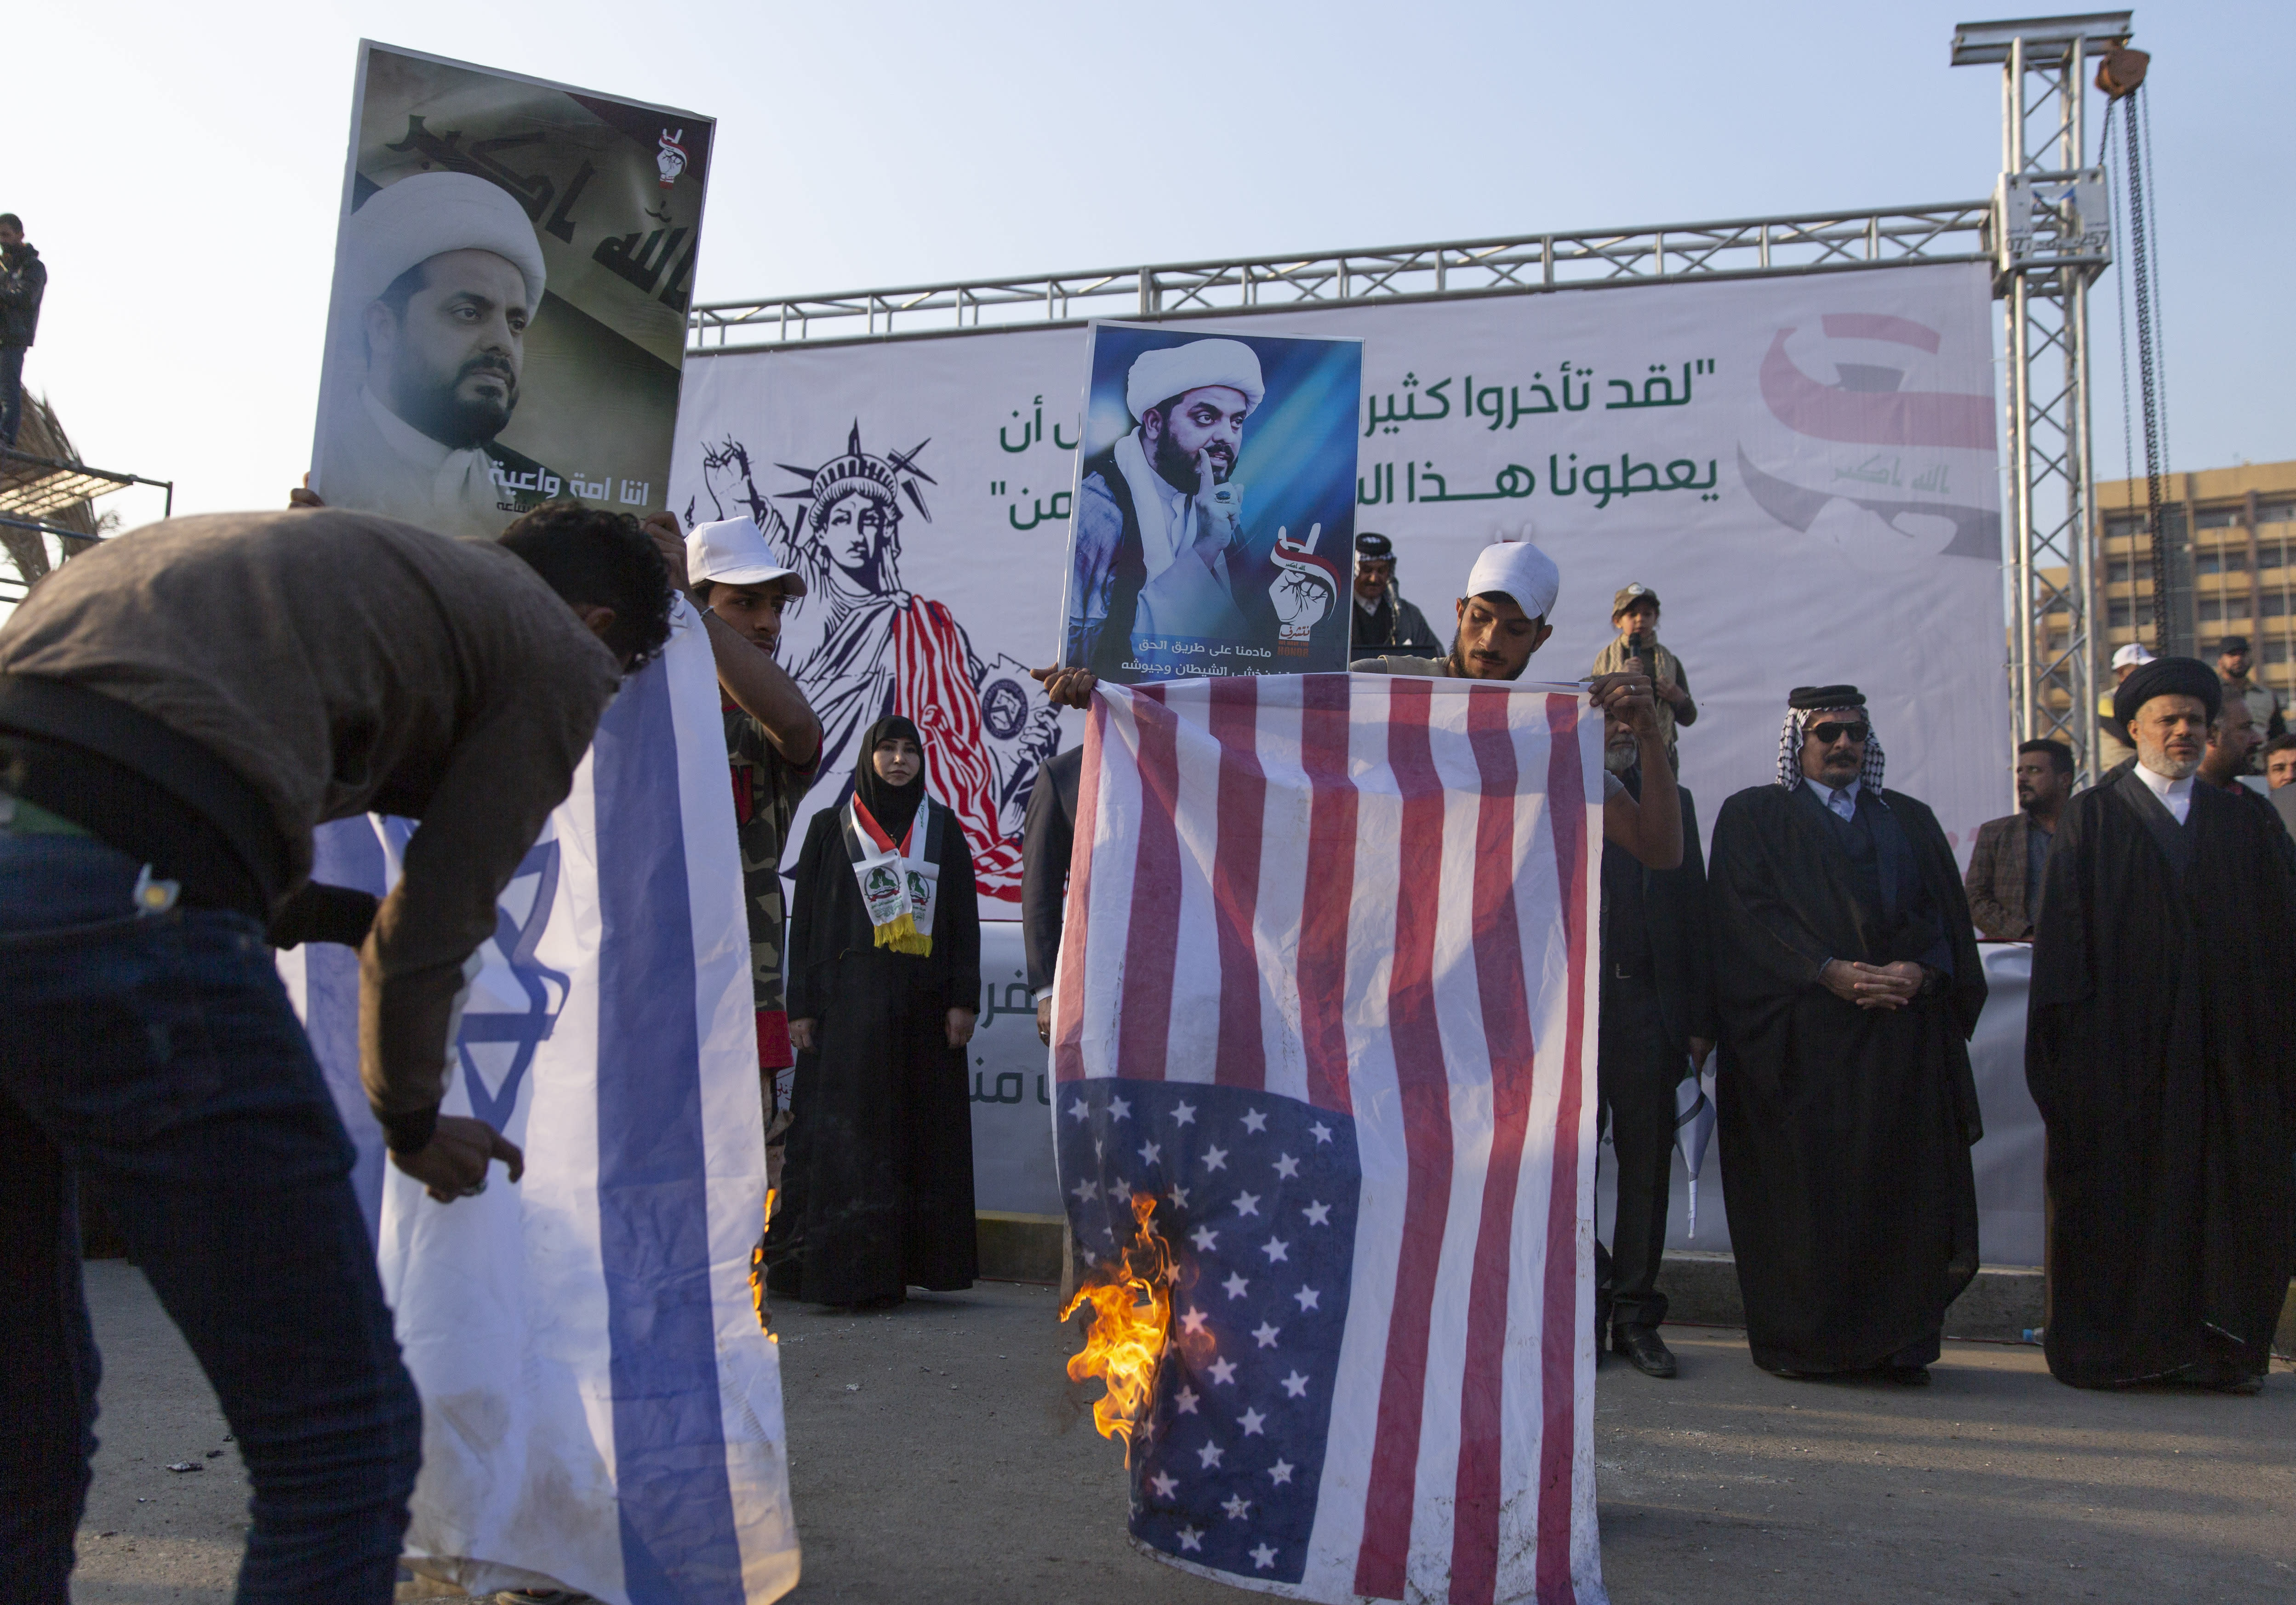 Protesters burn Israeli and US flags while others carry posters with pictures of Qais al-Khazali, during a rally for the Shiite group Asaib Ahl al-Haq, in Baghdad, Iraq, Saturday, Dec. 14, 2019. (AP Photo/Nasser Nasser)